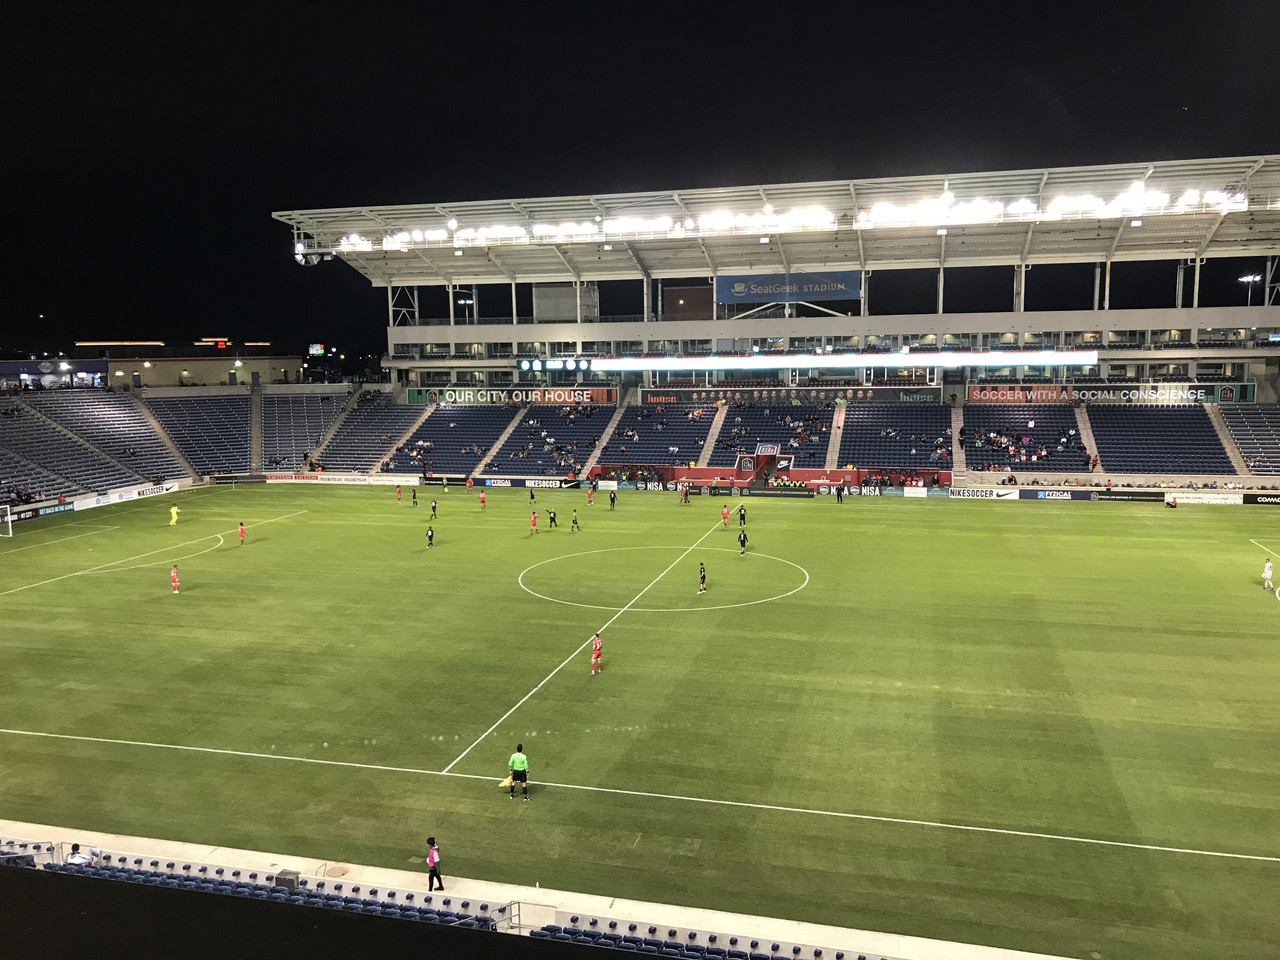 Chicago House AC 1-1 Michigan Stars FC: Honors even at SeatGeek Stadium